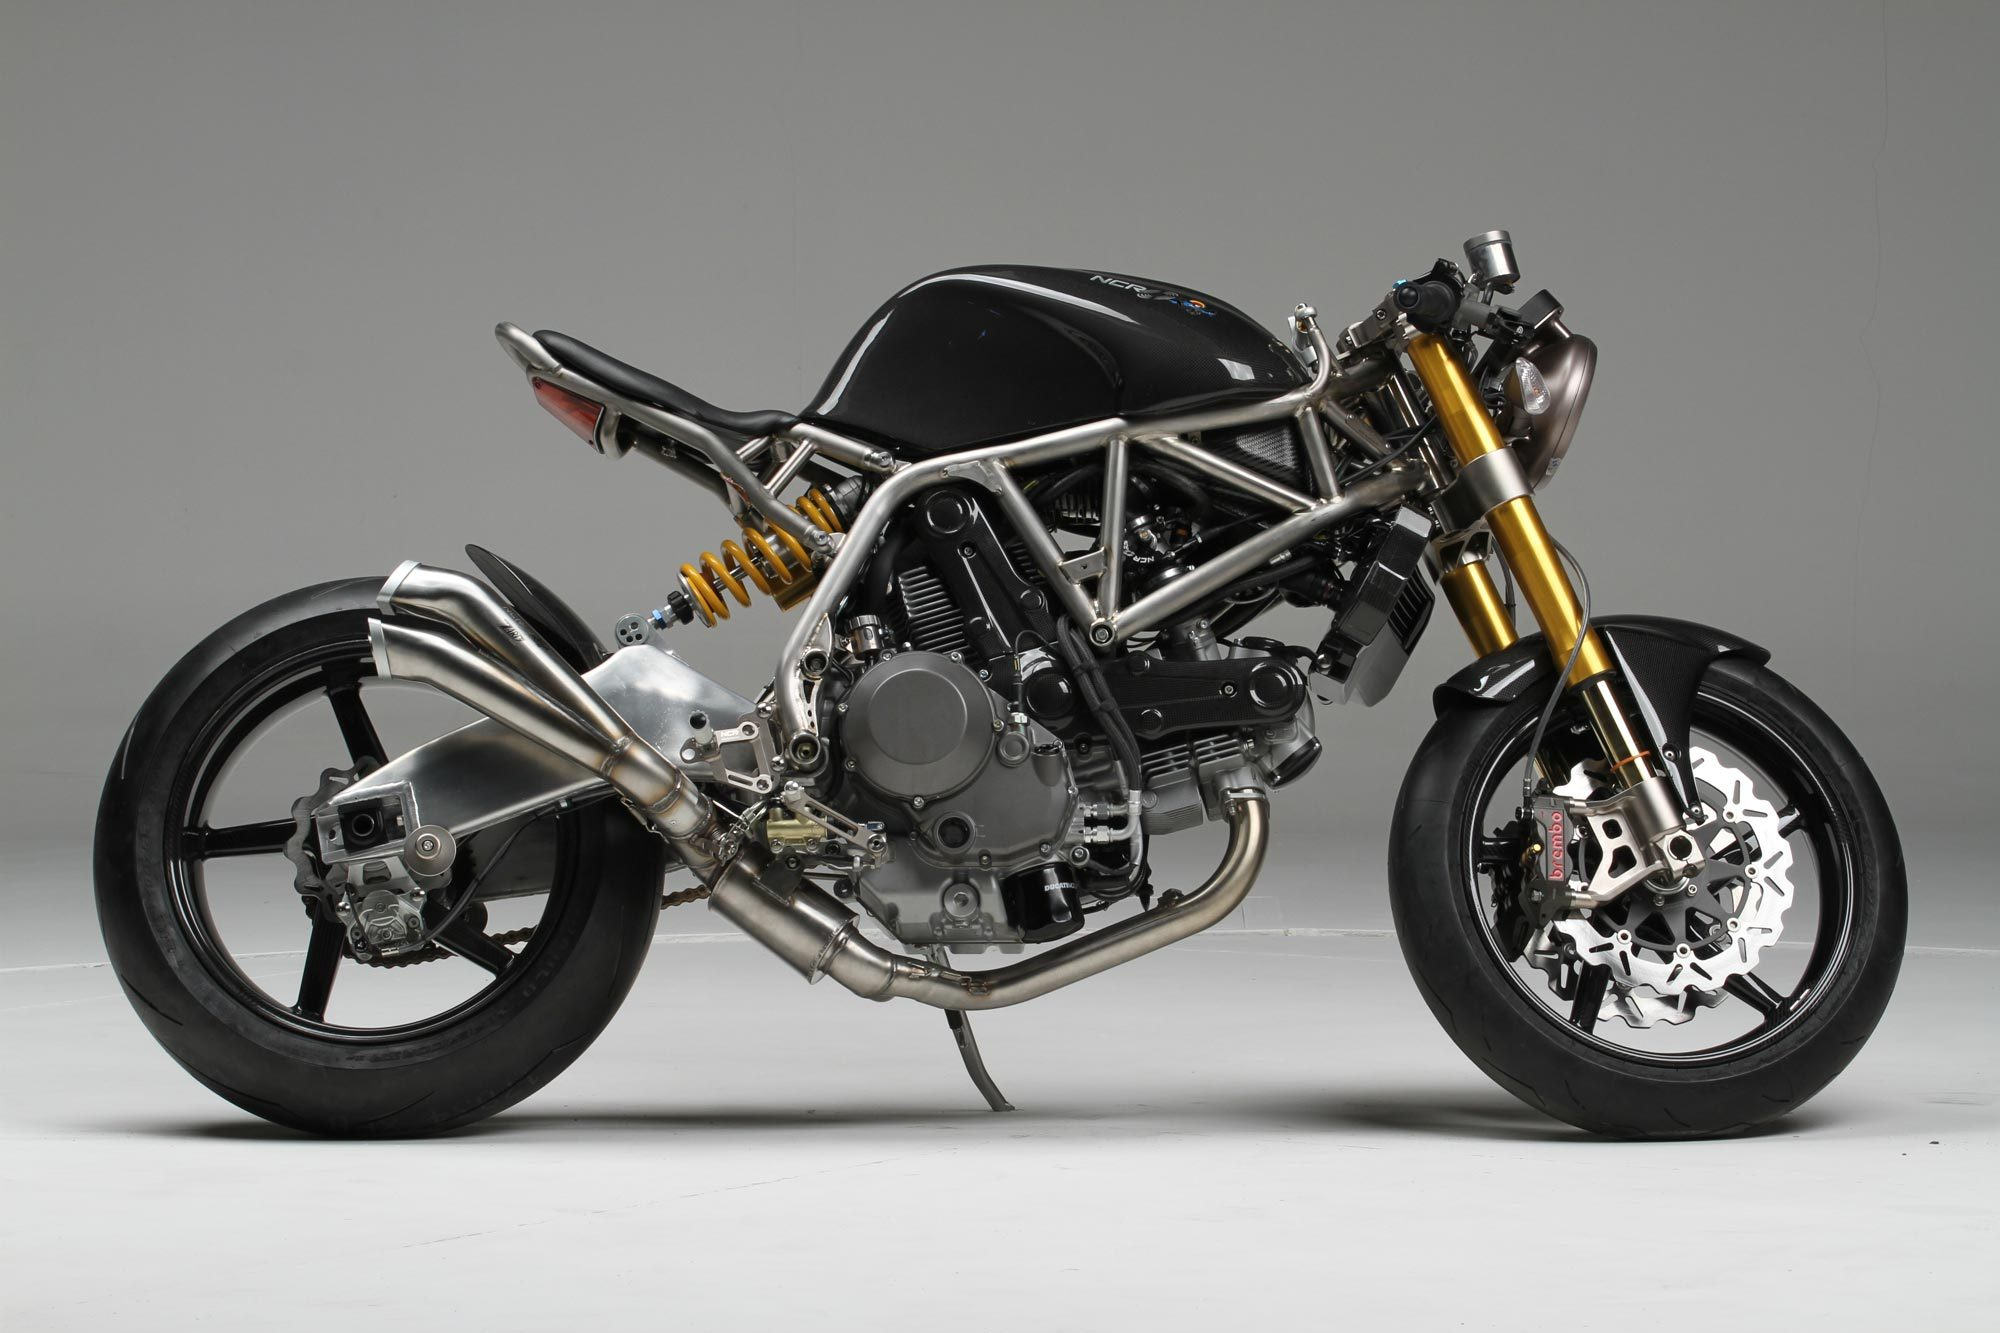 Ducati Monster 1100 S images #79355